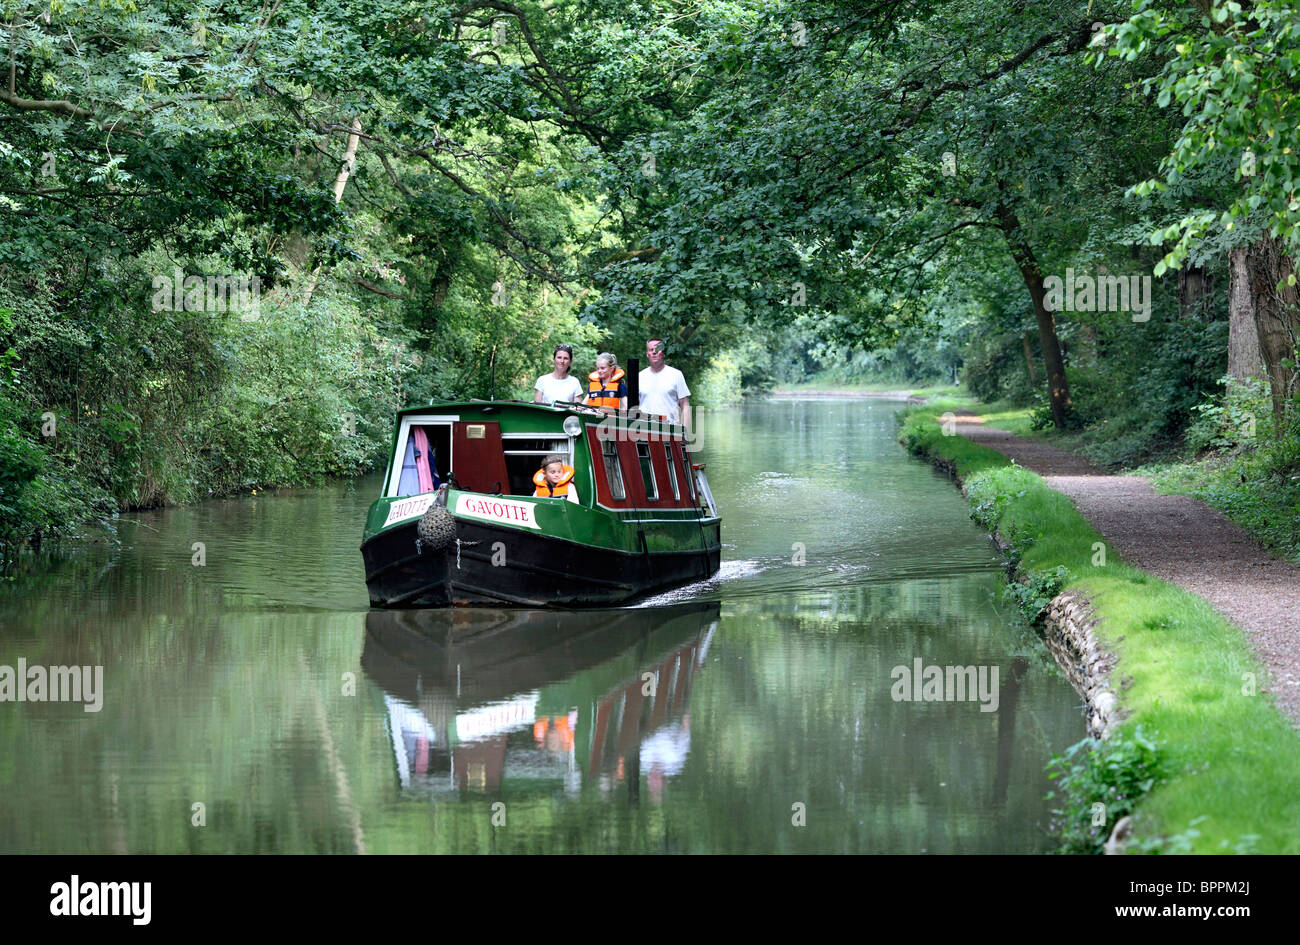 A narrowboat on the Oxford Canal near Brinklow, Warwickshire. - Stock Image